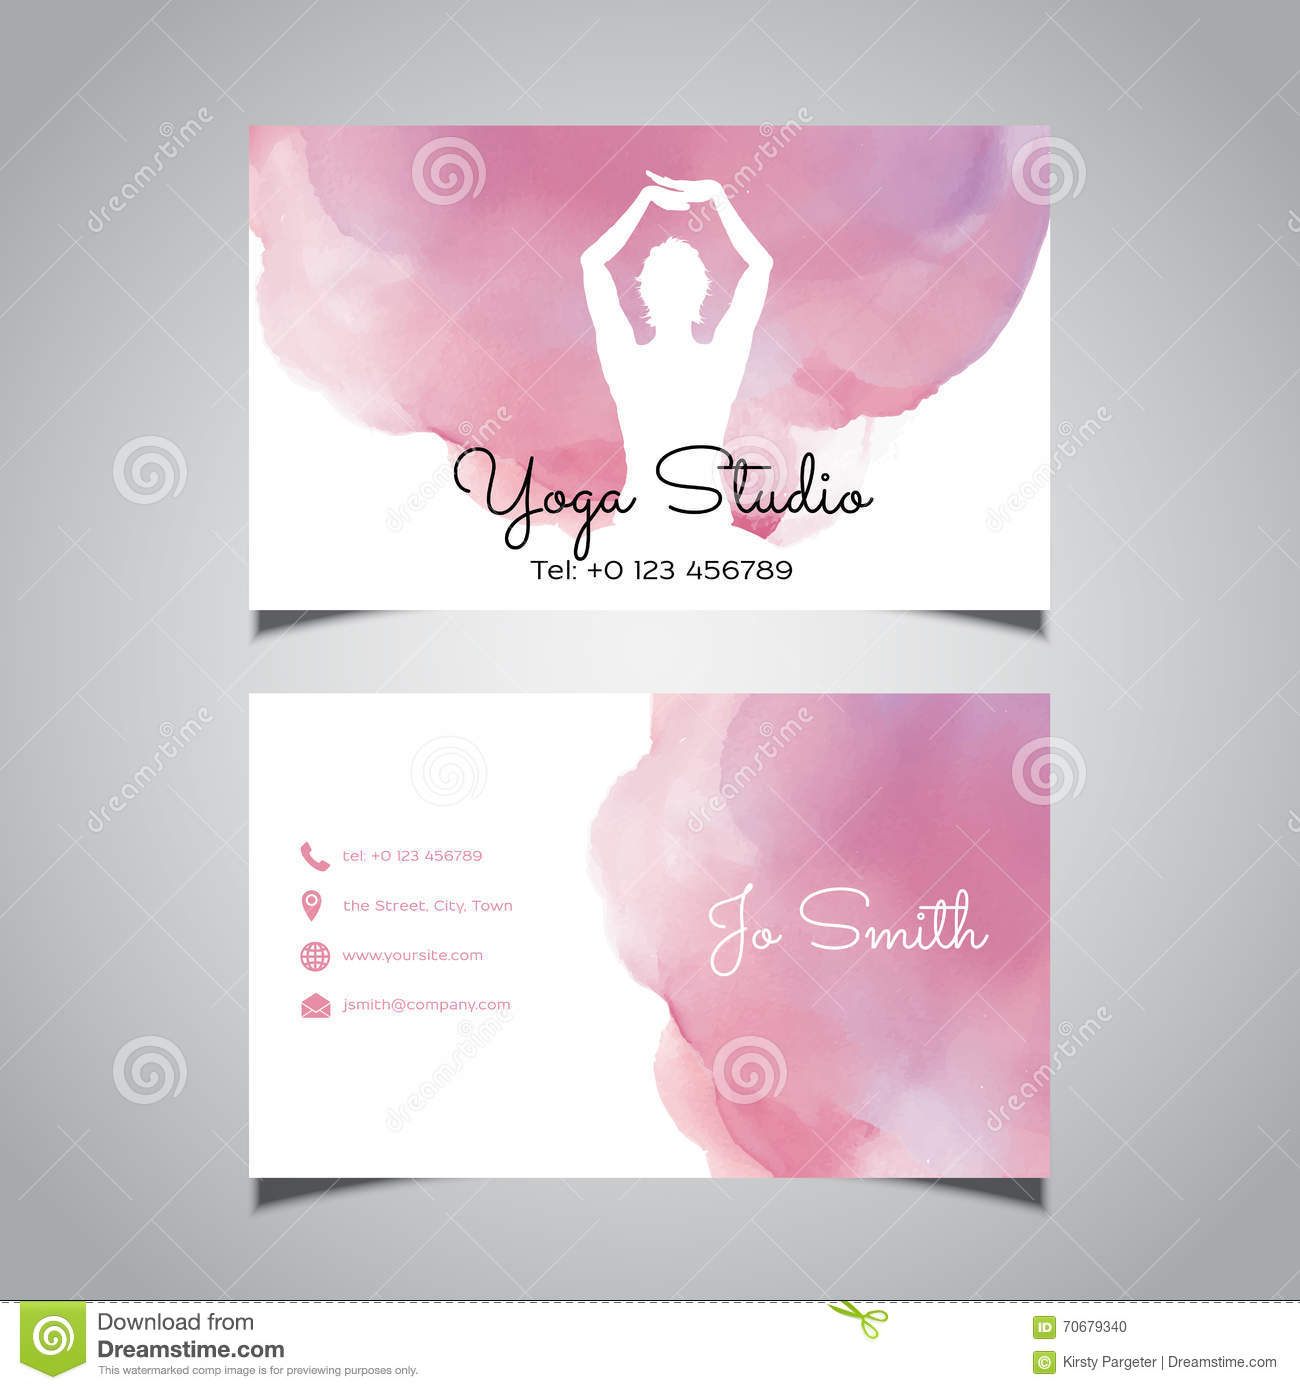 Yoga design business card stock vector. Illustration of female ...